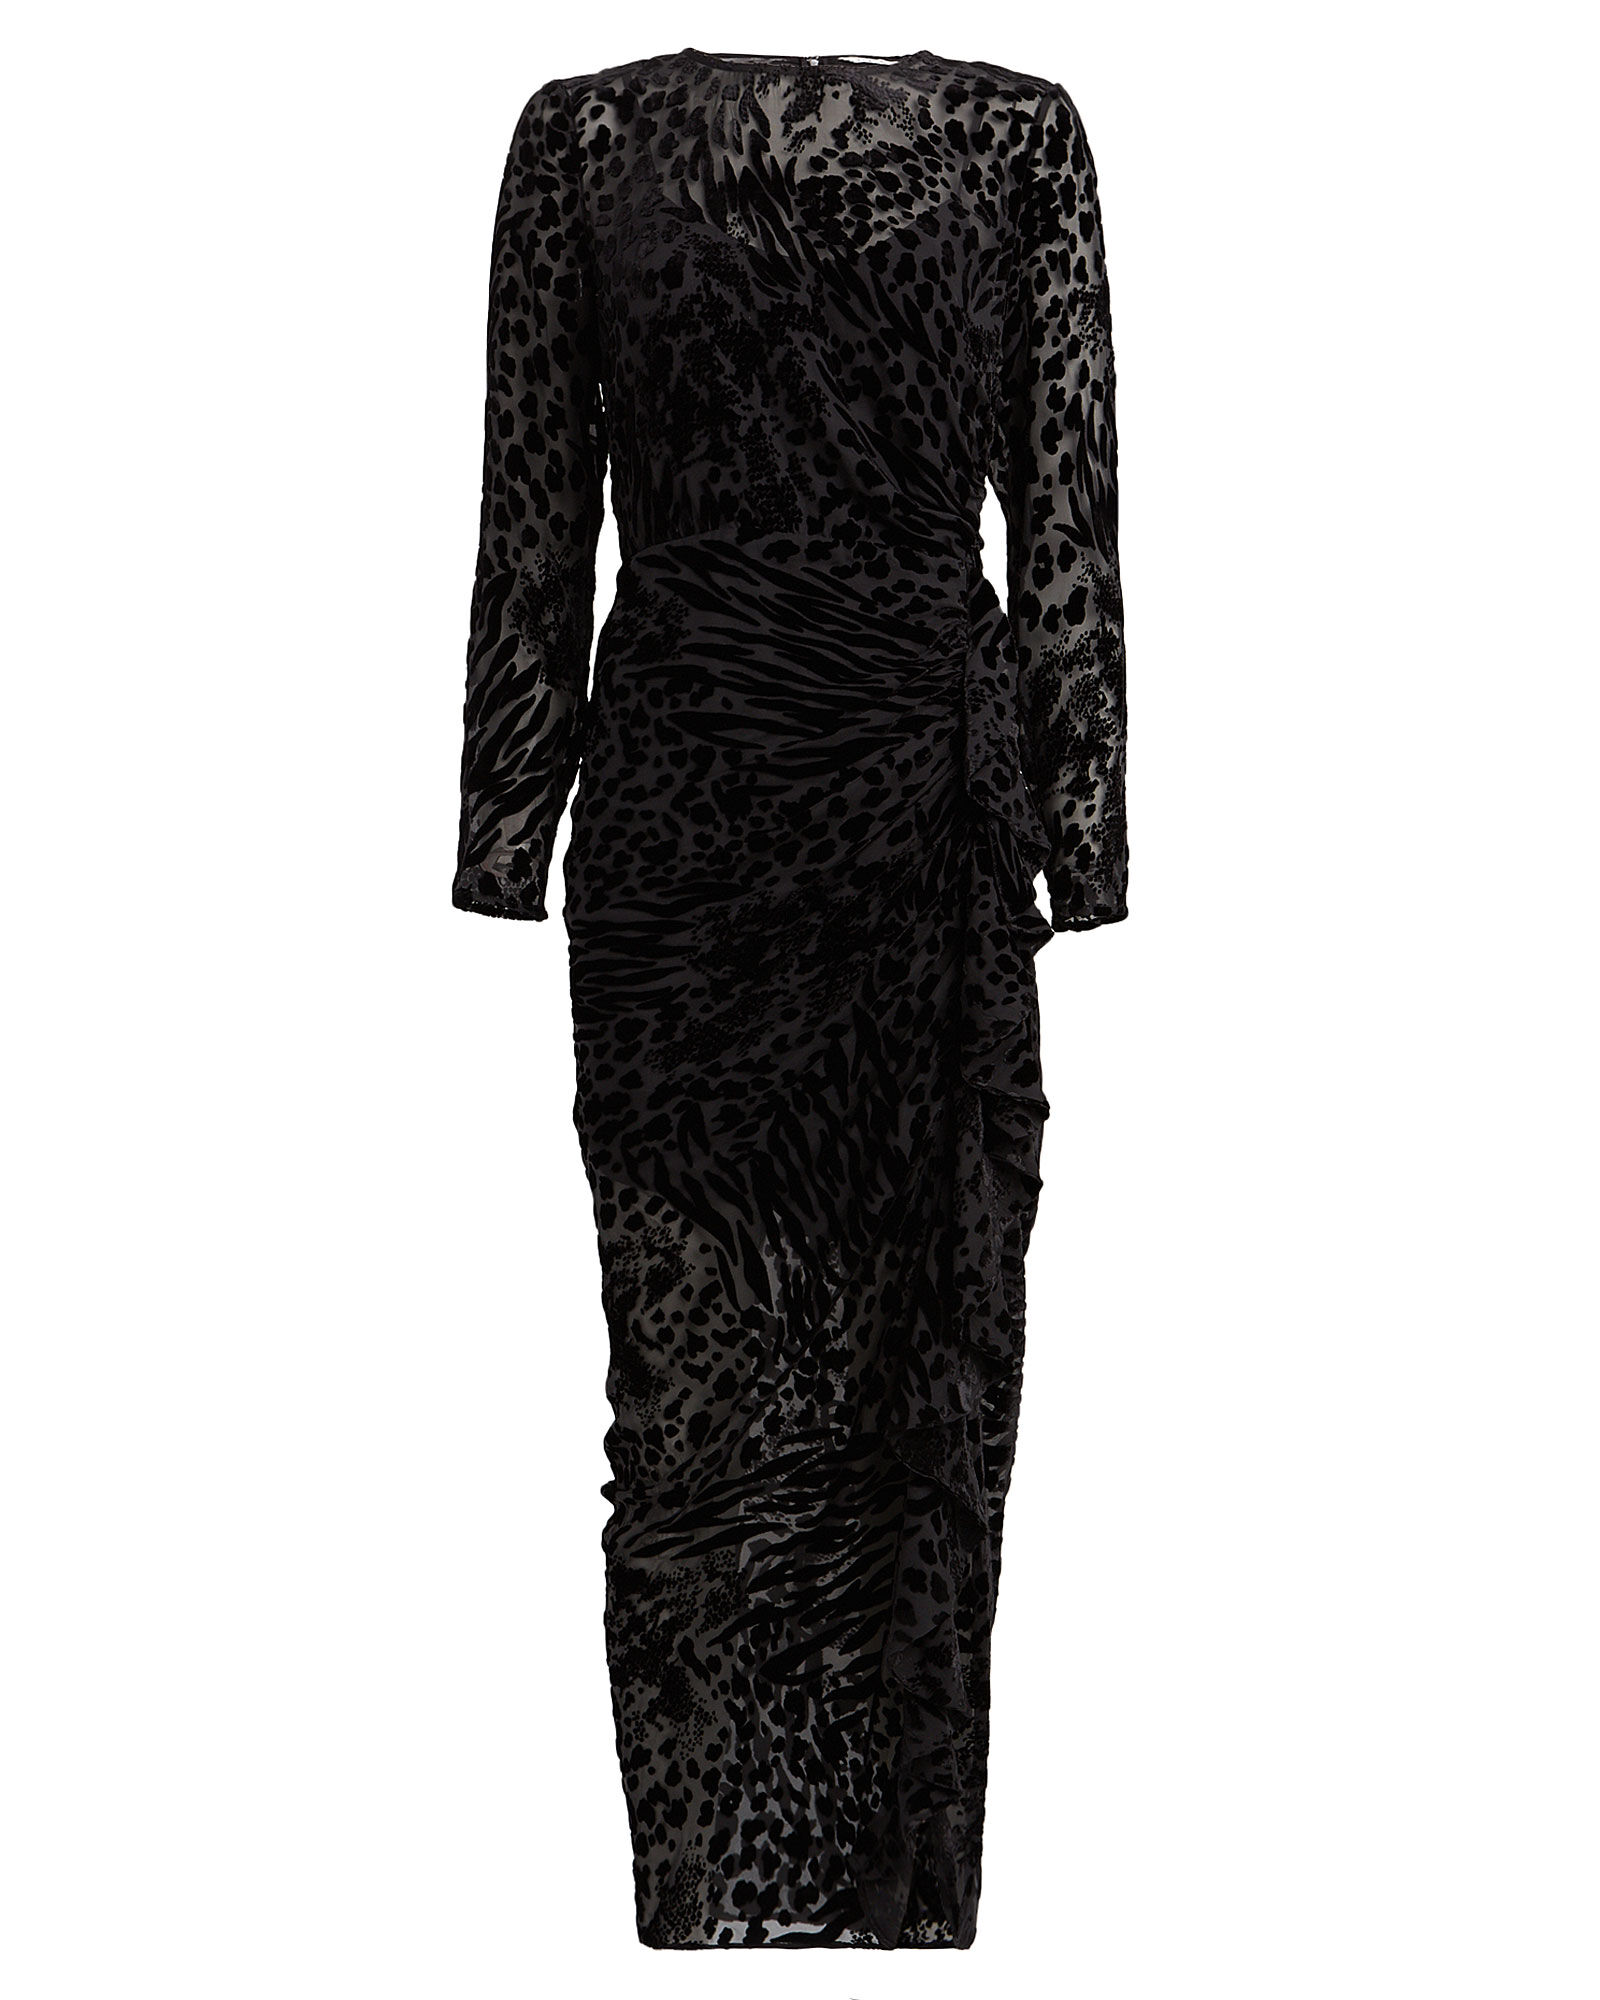 Lala Velvet Leopard Devoré Dress, BLACK, hi-res